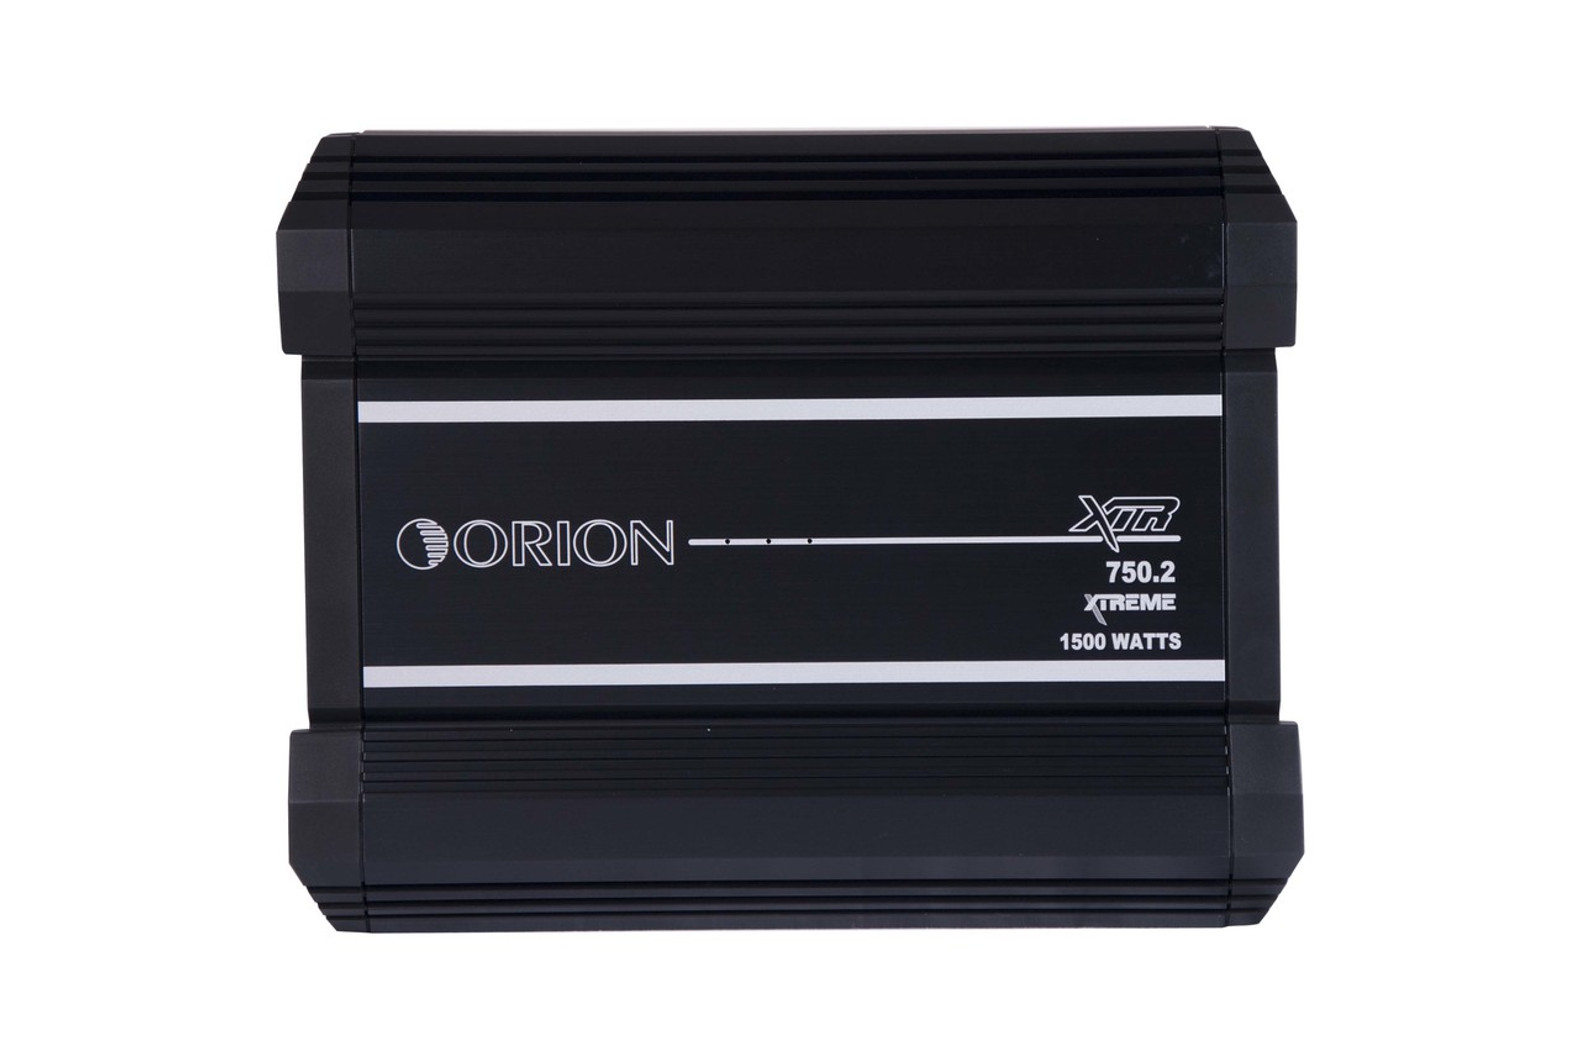 ORION XTR XTR750 2, 2 CHANNEL AMPLIFIER 750 WATTS RMS W/X-OVER